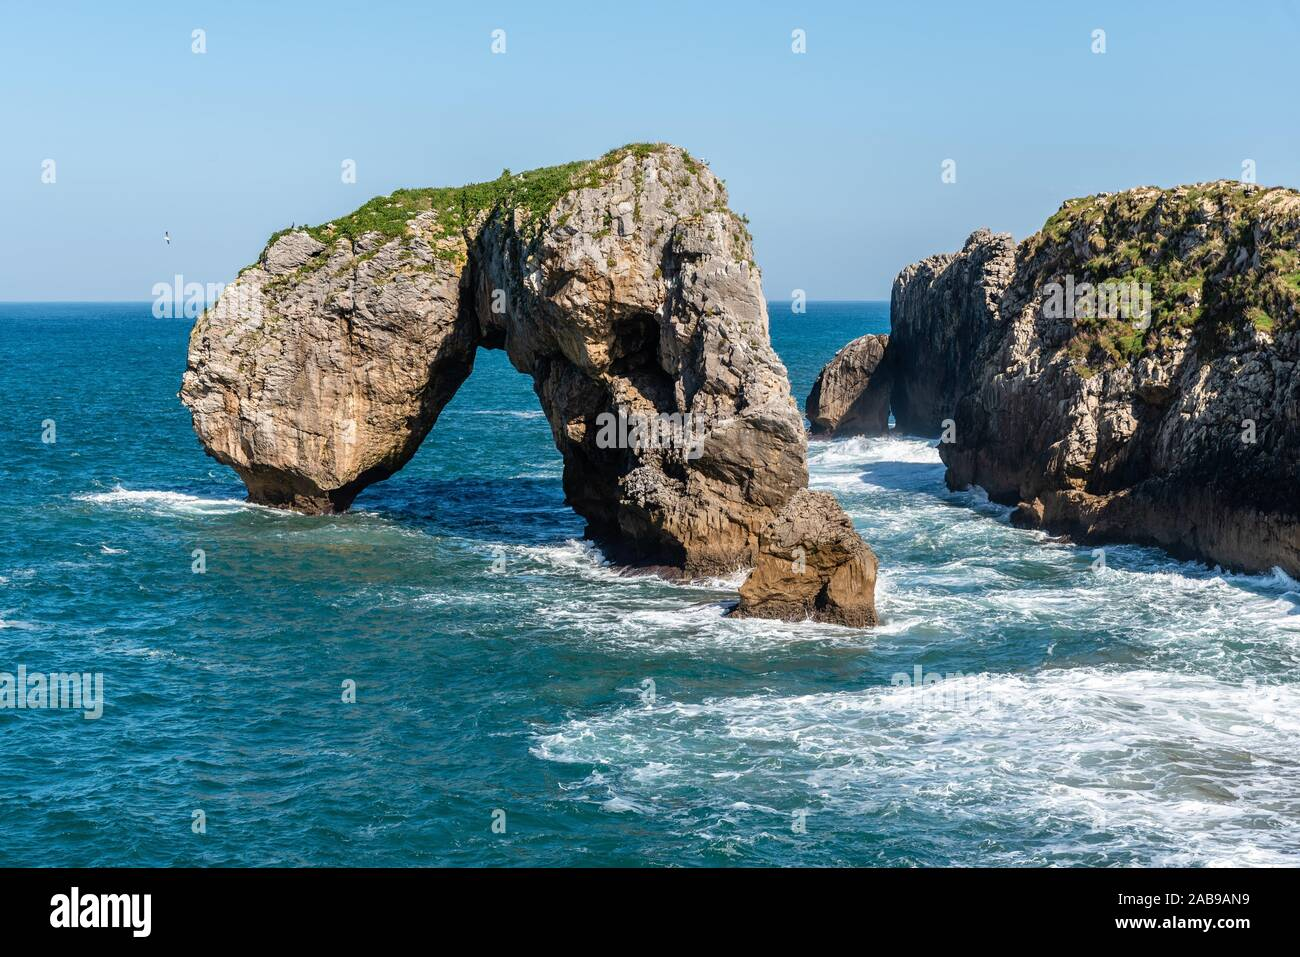 Scenic view of waves splashing against the rocky coast against blue sky. Castro de las Gaviotas, Fort of the Seagulls, and Beach of the Huelga, Stock Photo